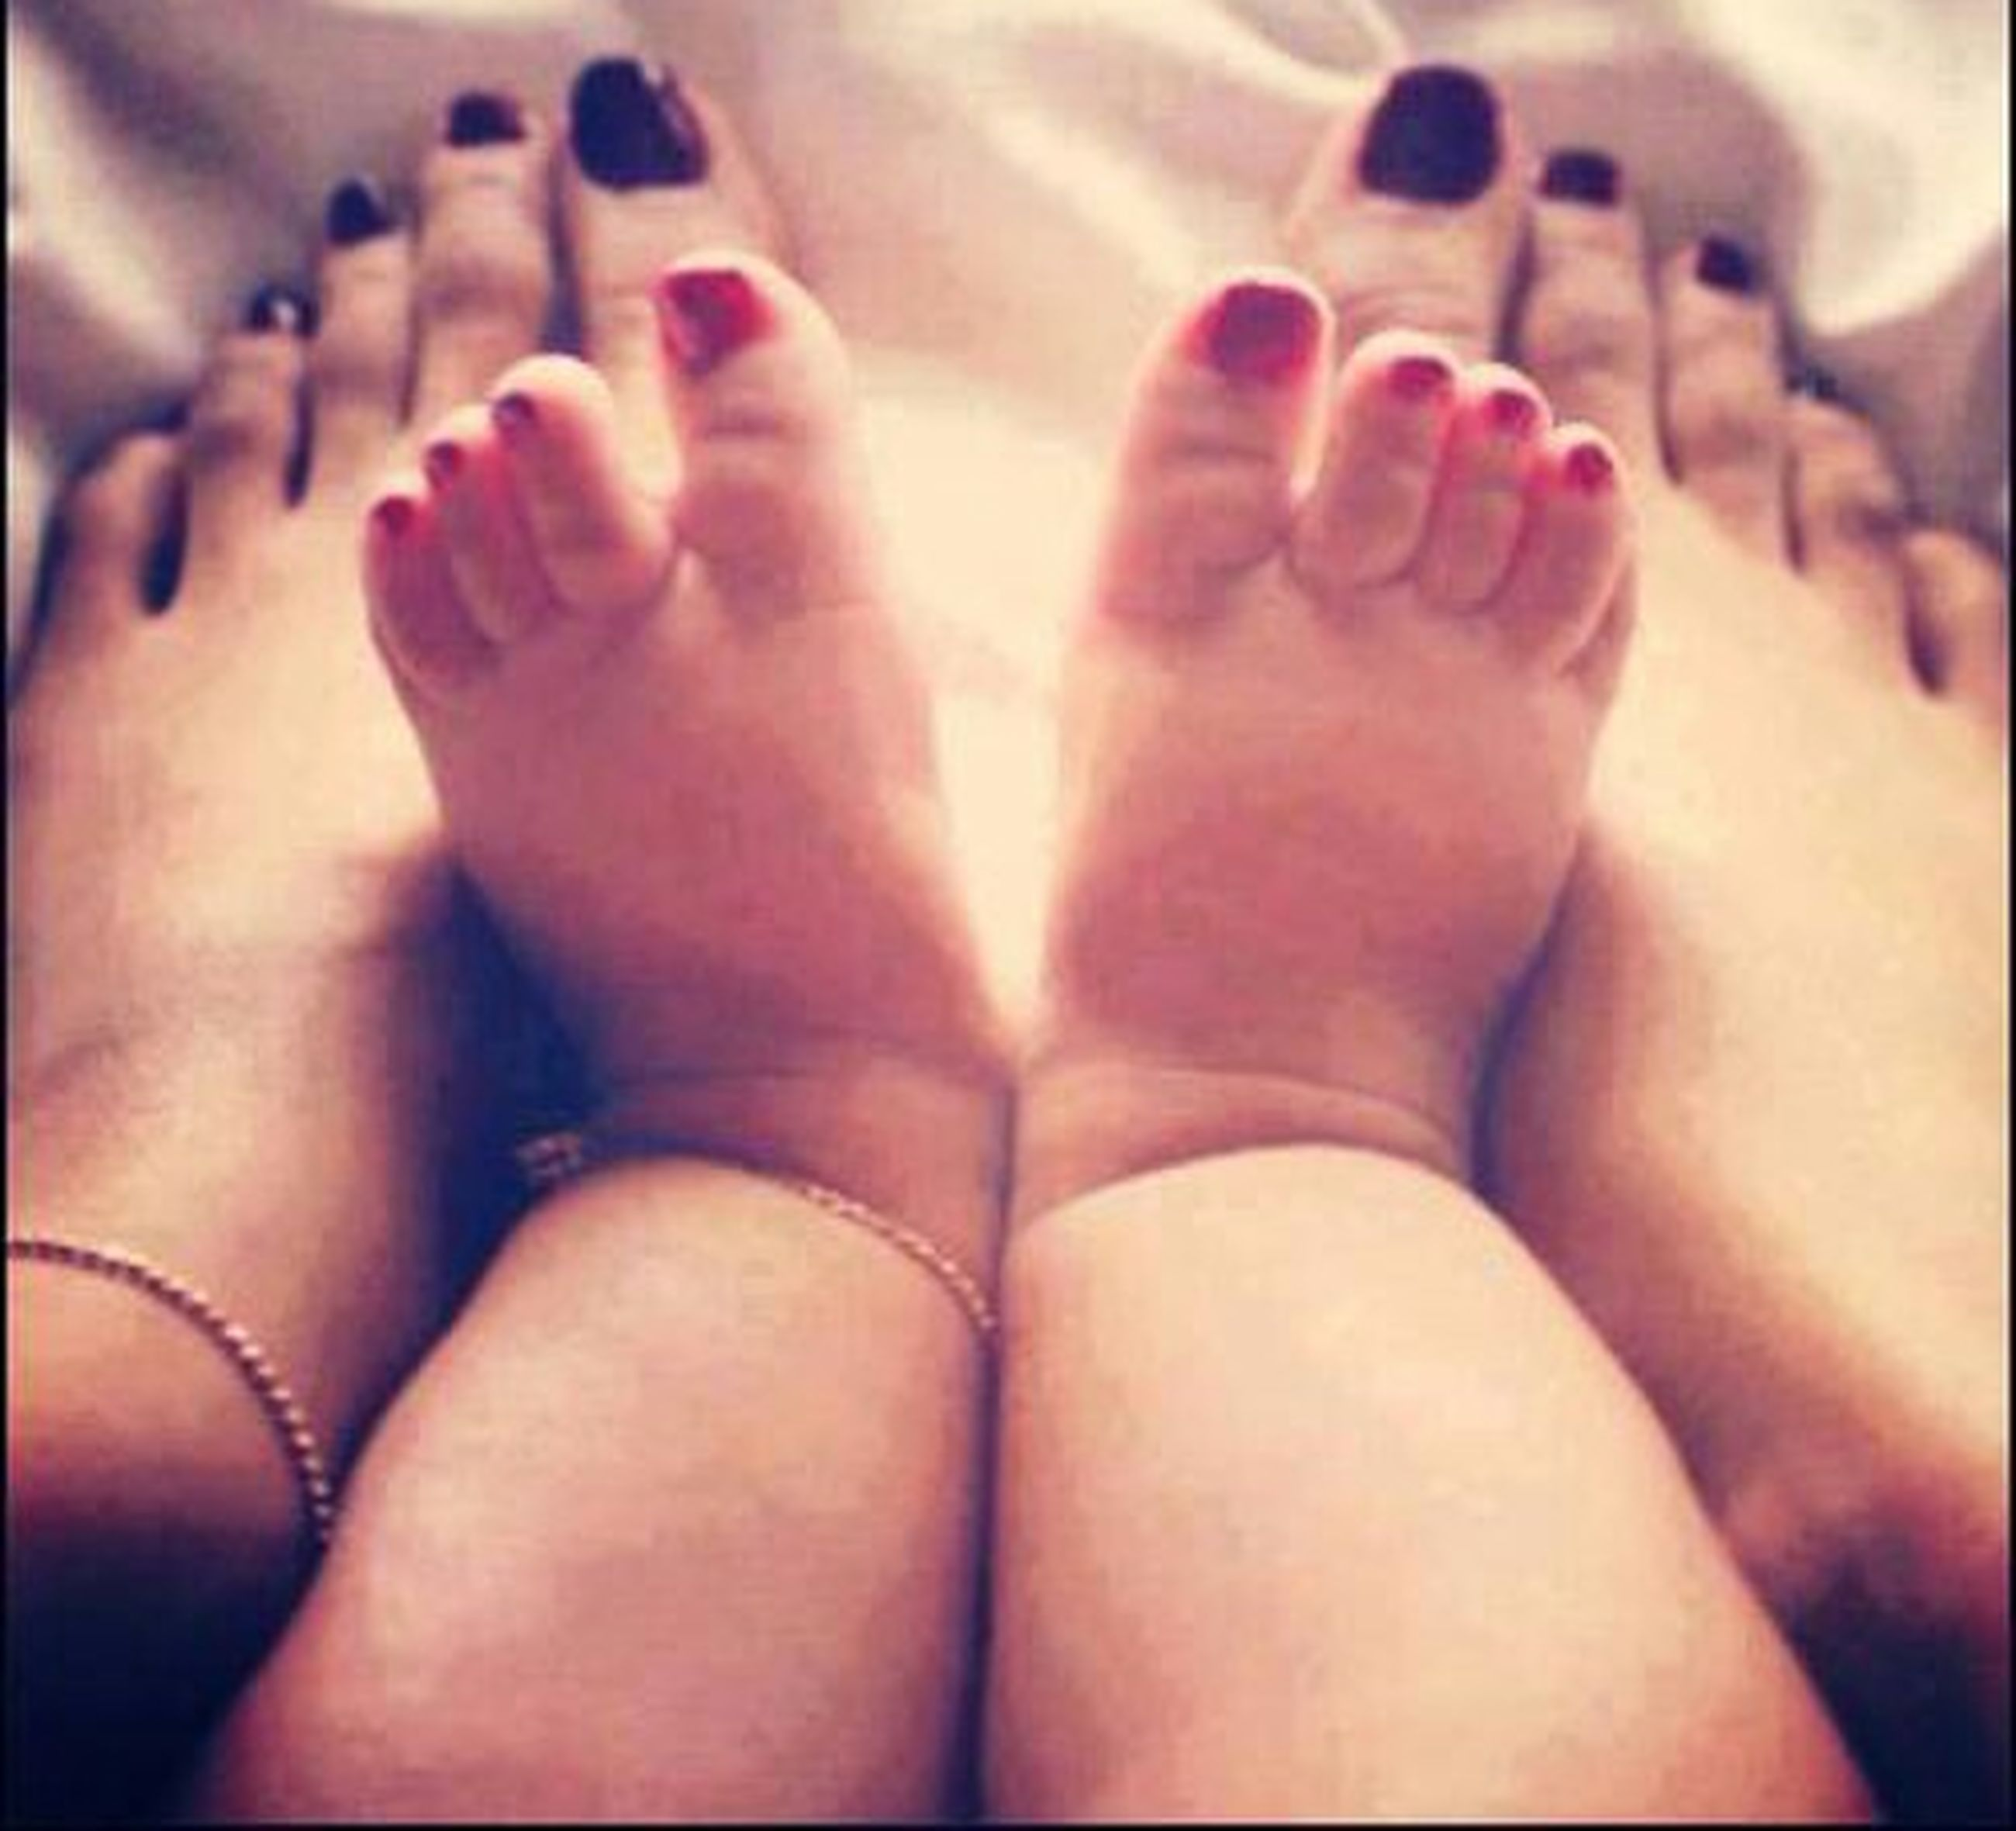 person, indoors, part of, lifestyles, leisure activity, togetherness, love, close-up, barefoot, low section, bonding, human finger, personal perspective, human foot